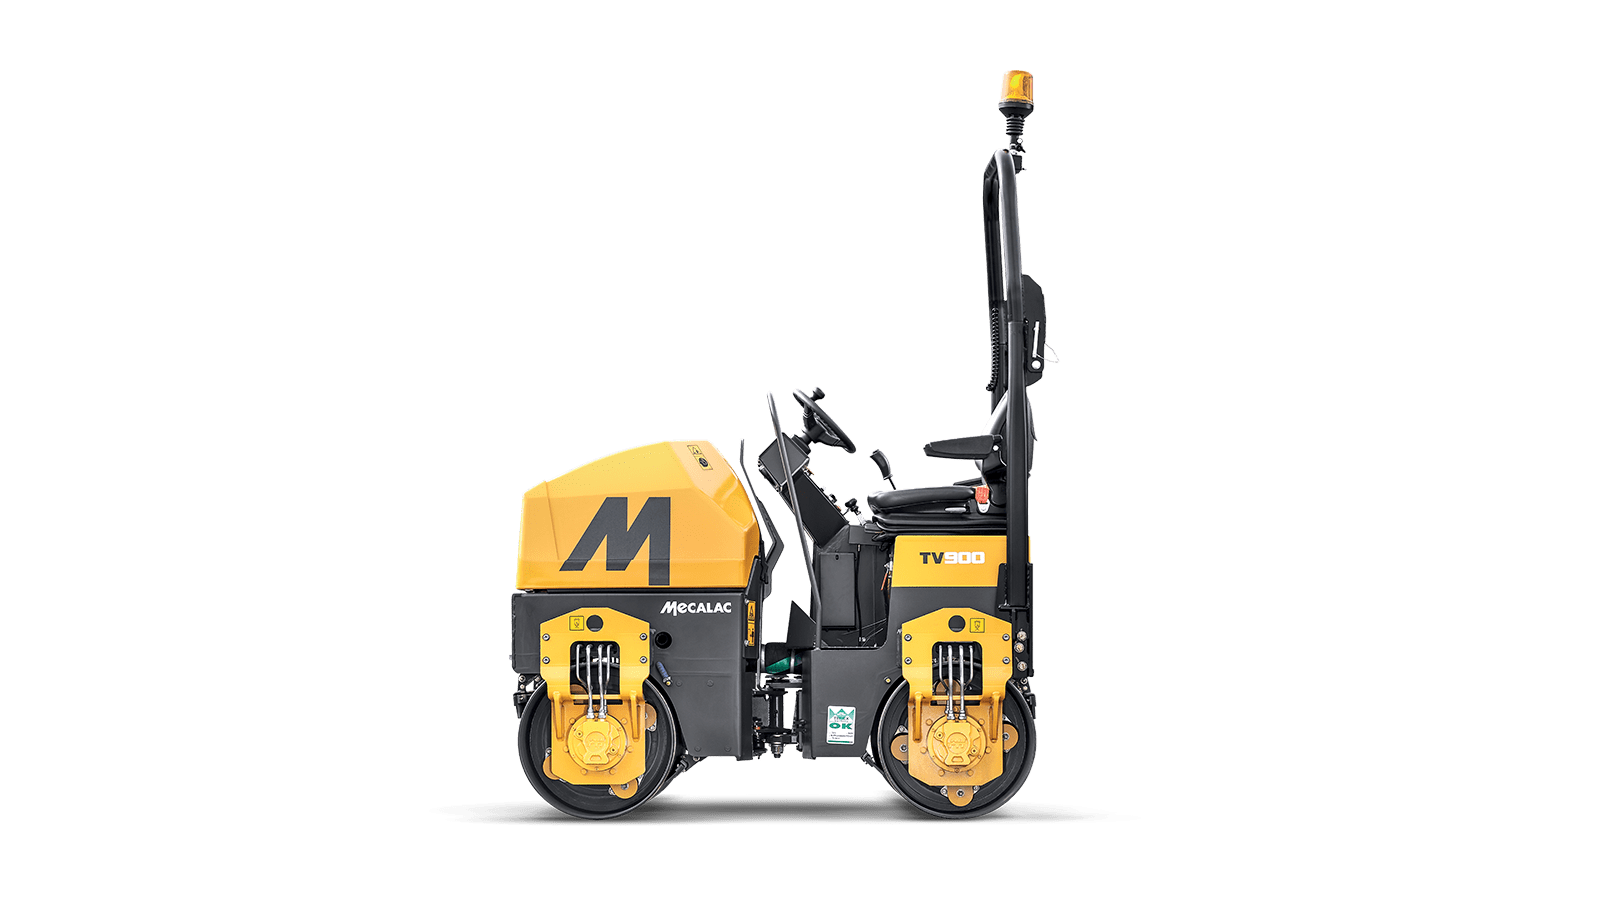 Picture of 1.5 Ton TV900 Mecalac Roller